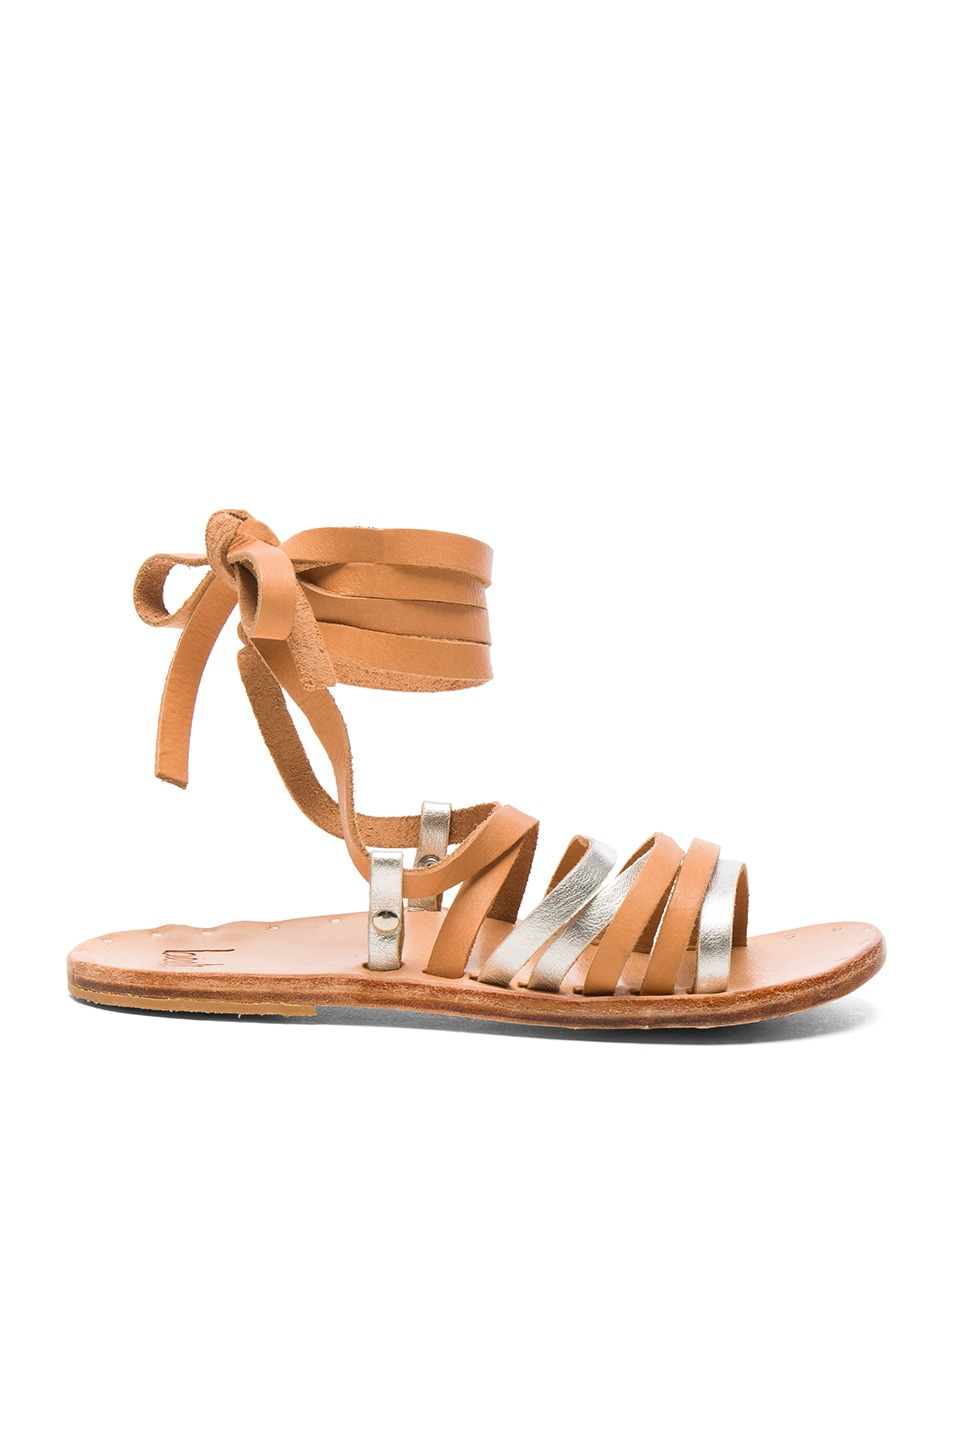 Image 1 of Beek Leather Heron Sandals in Silver & Natural